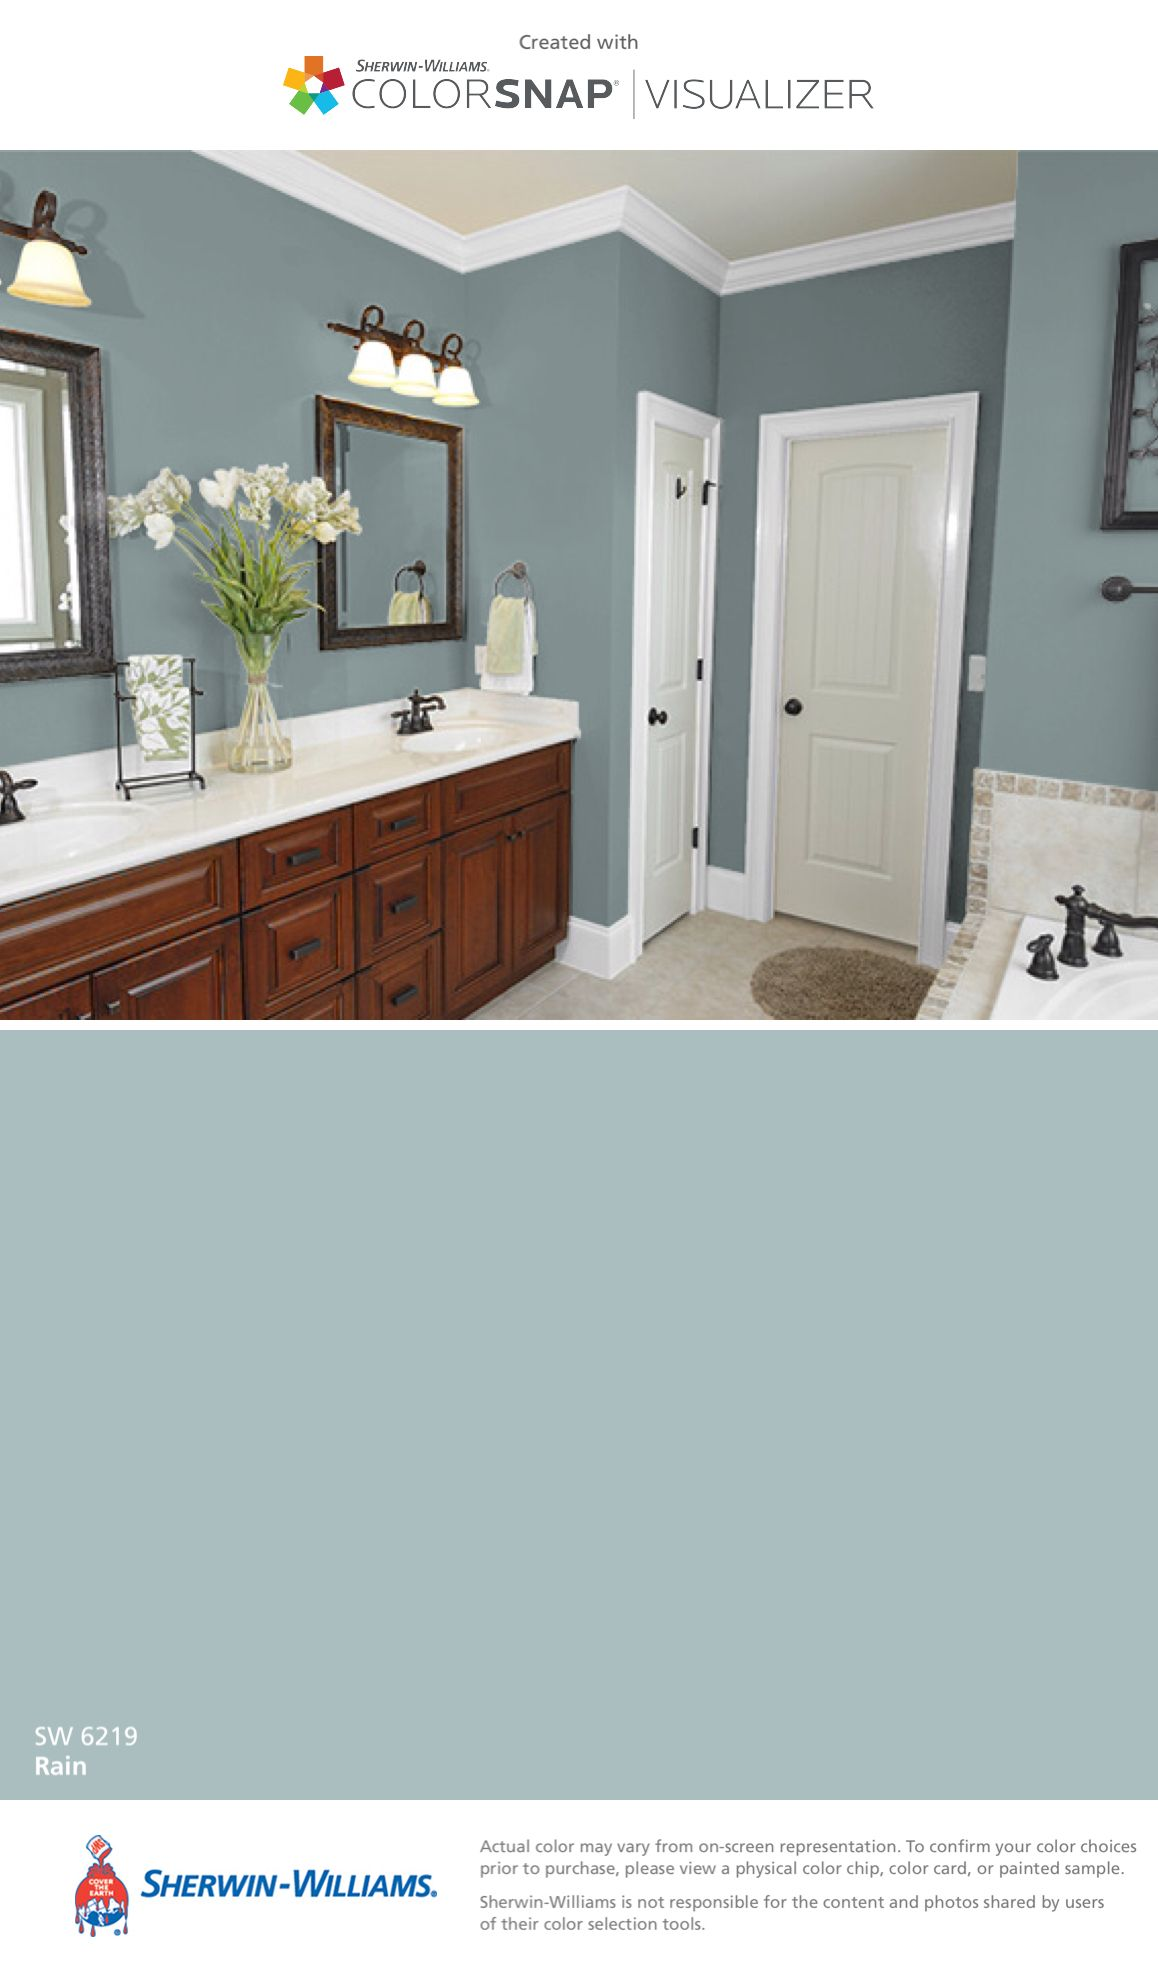 I Found This Color With Colorsnap Visualizer For Iphone By Sherwin Williams Rain Sw 6219 Bathroom Colors Bathroom Paint Colors Paint Colors For Home